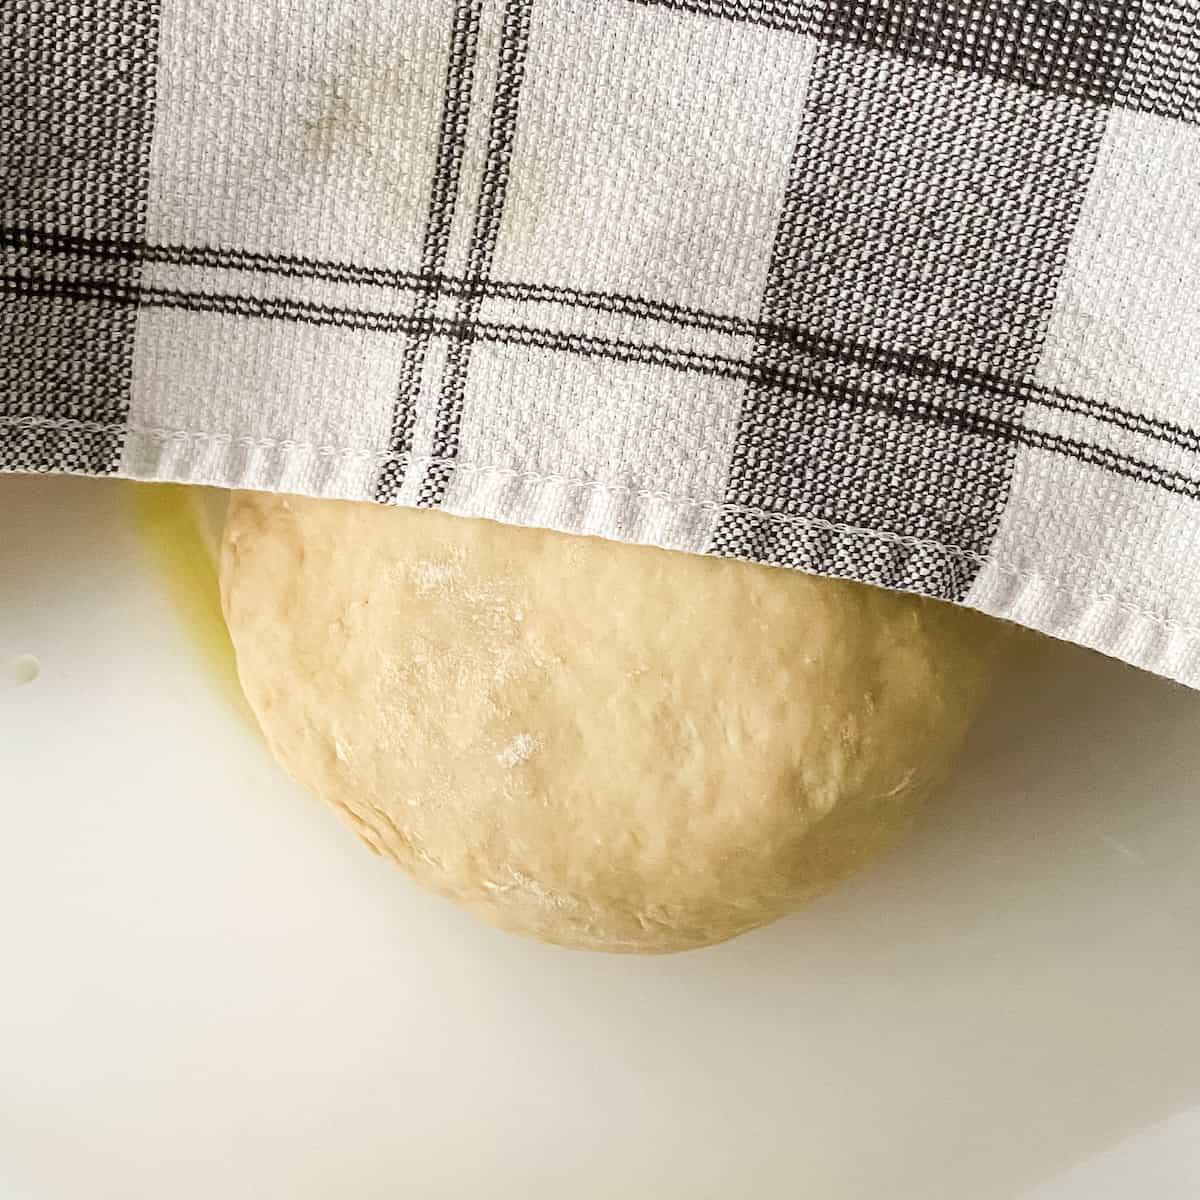 making pizza dough for a pizza party